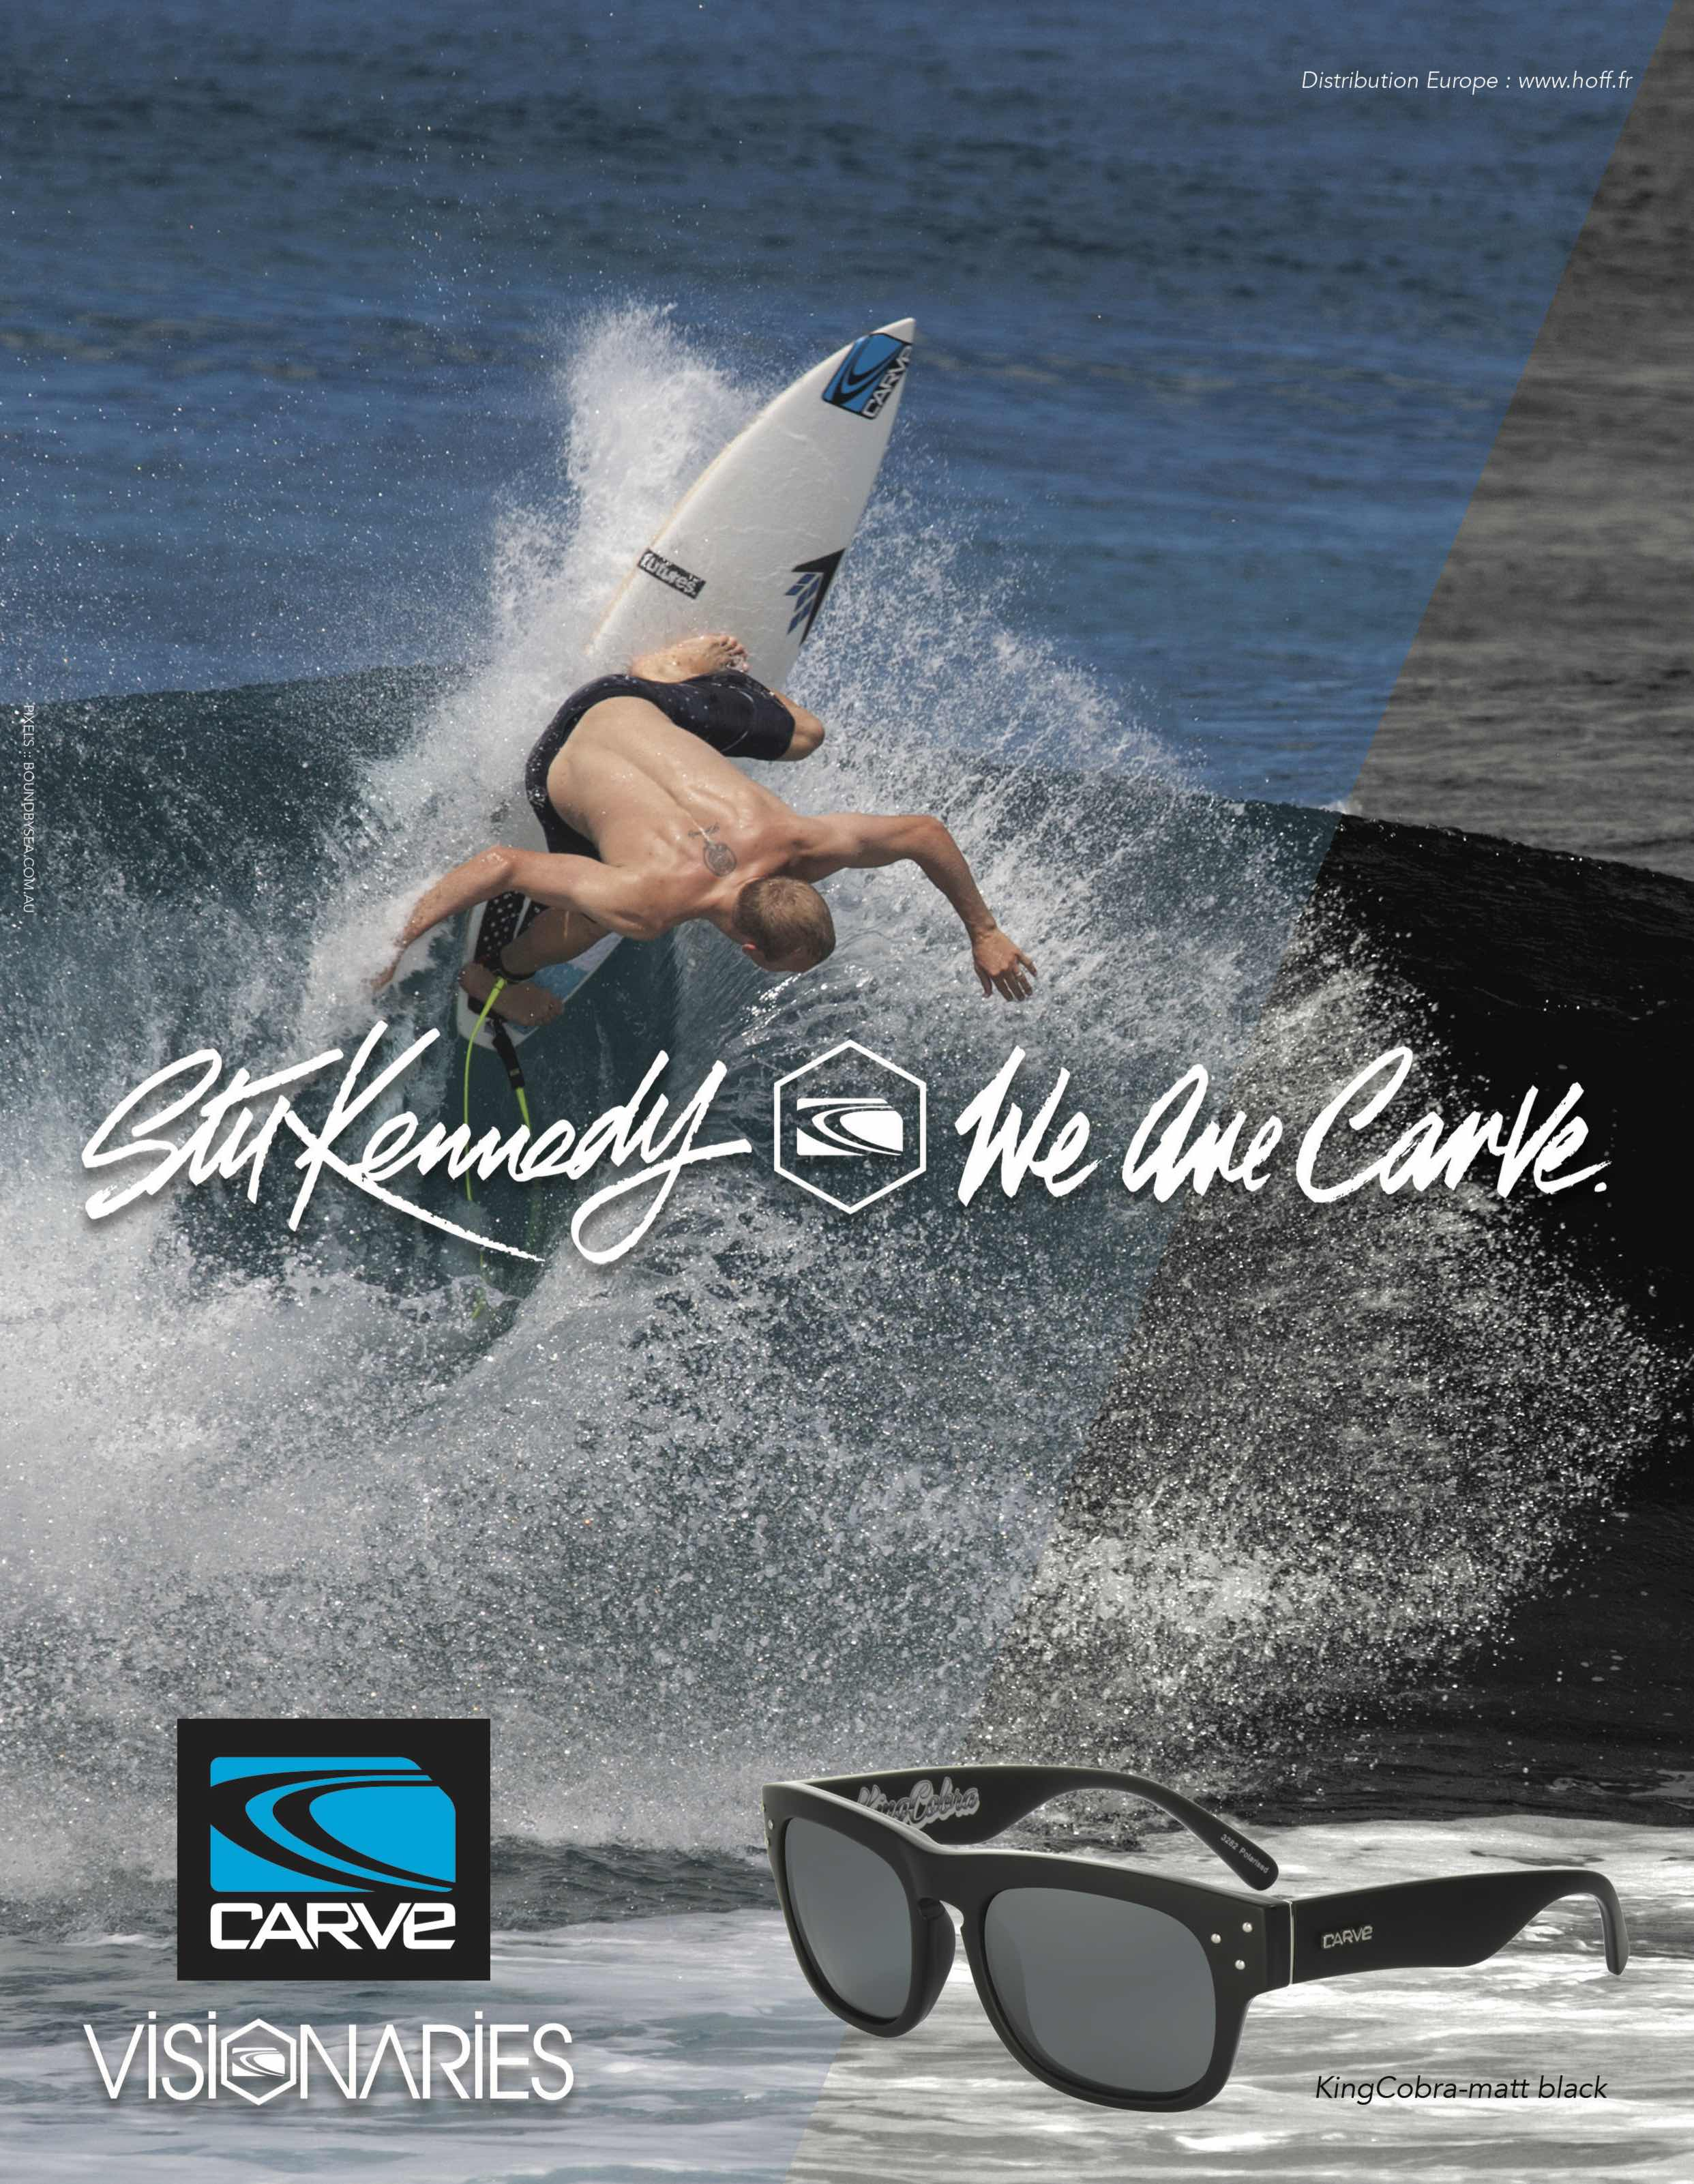 86 Carve SURF